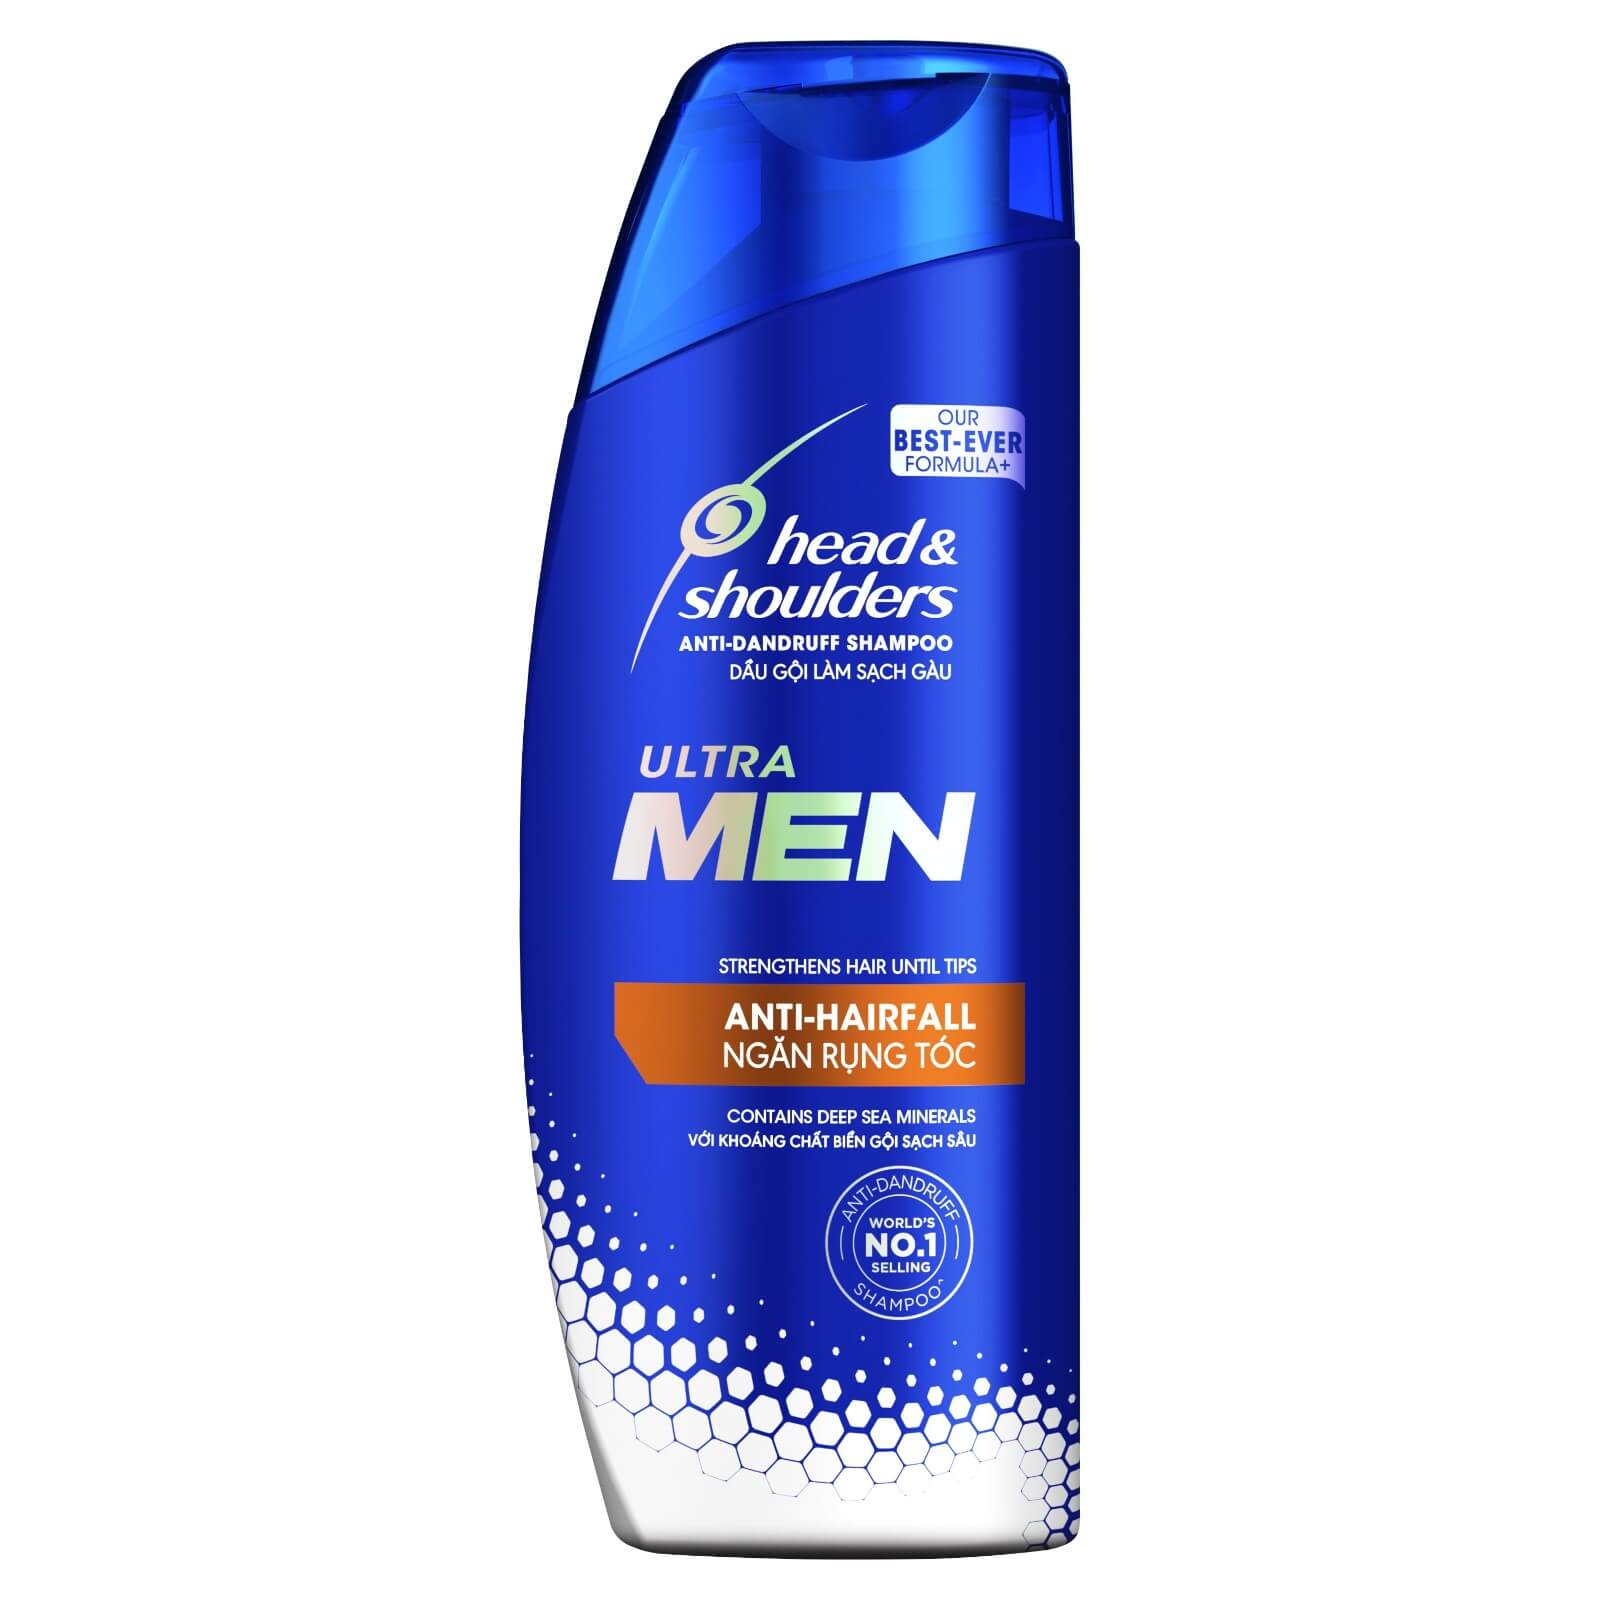 Head & Shoulders 70ml-(Ultra Men - Anti-Hairfall)